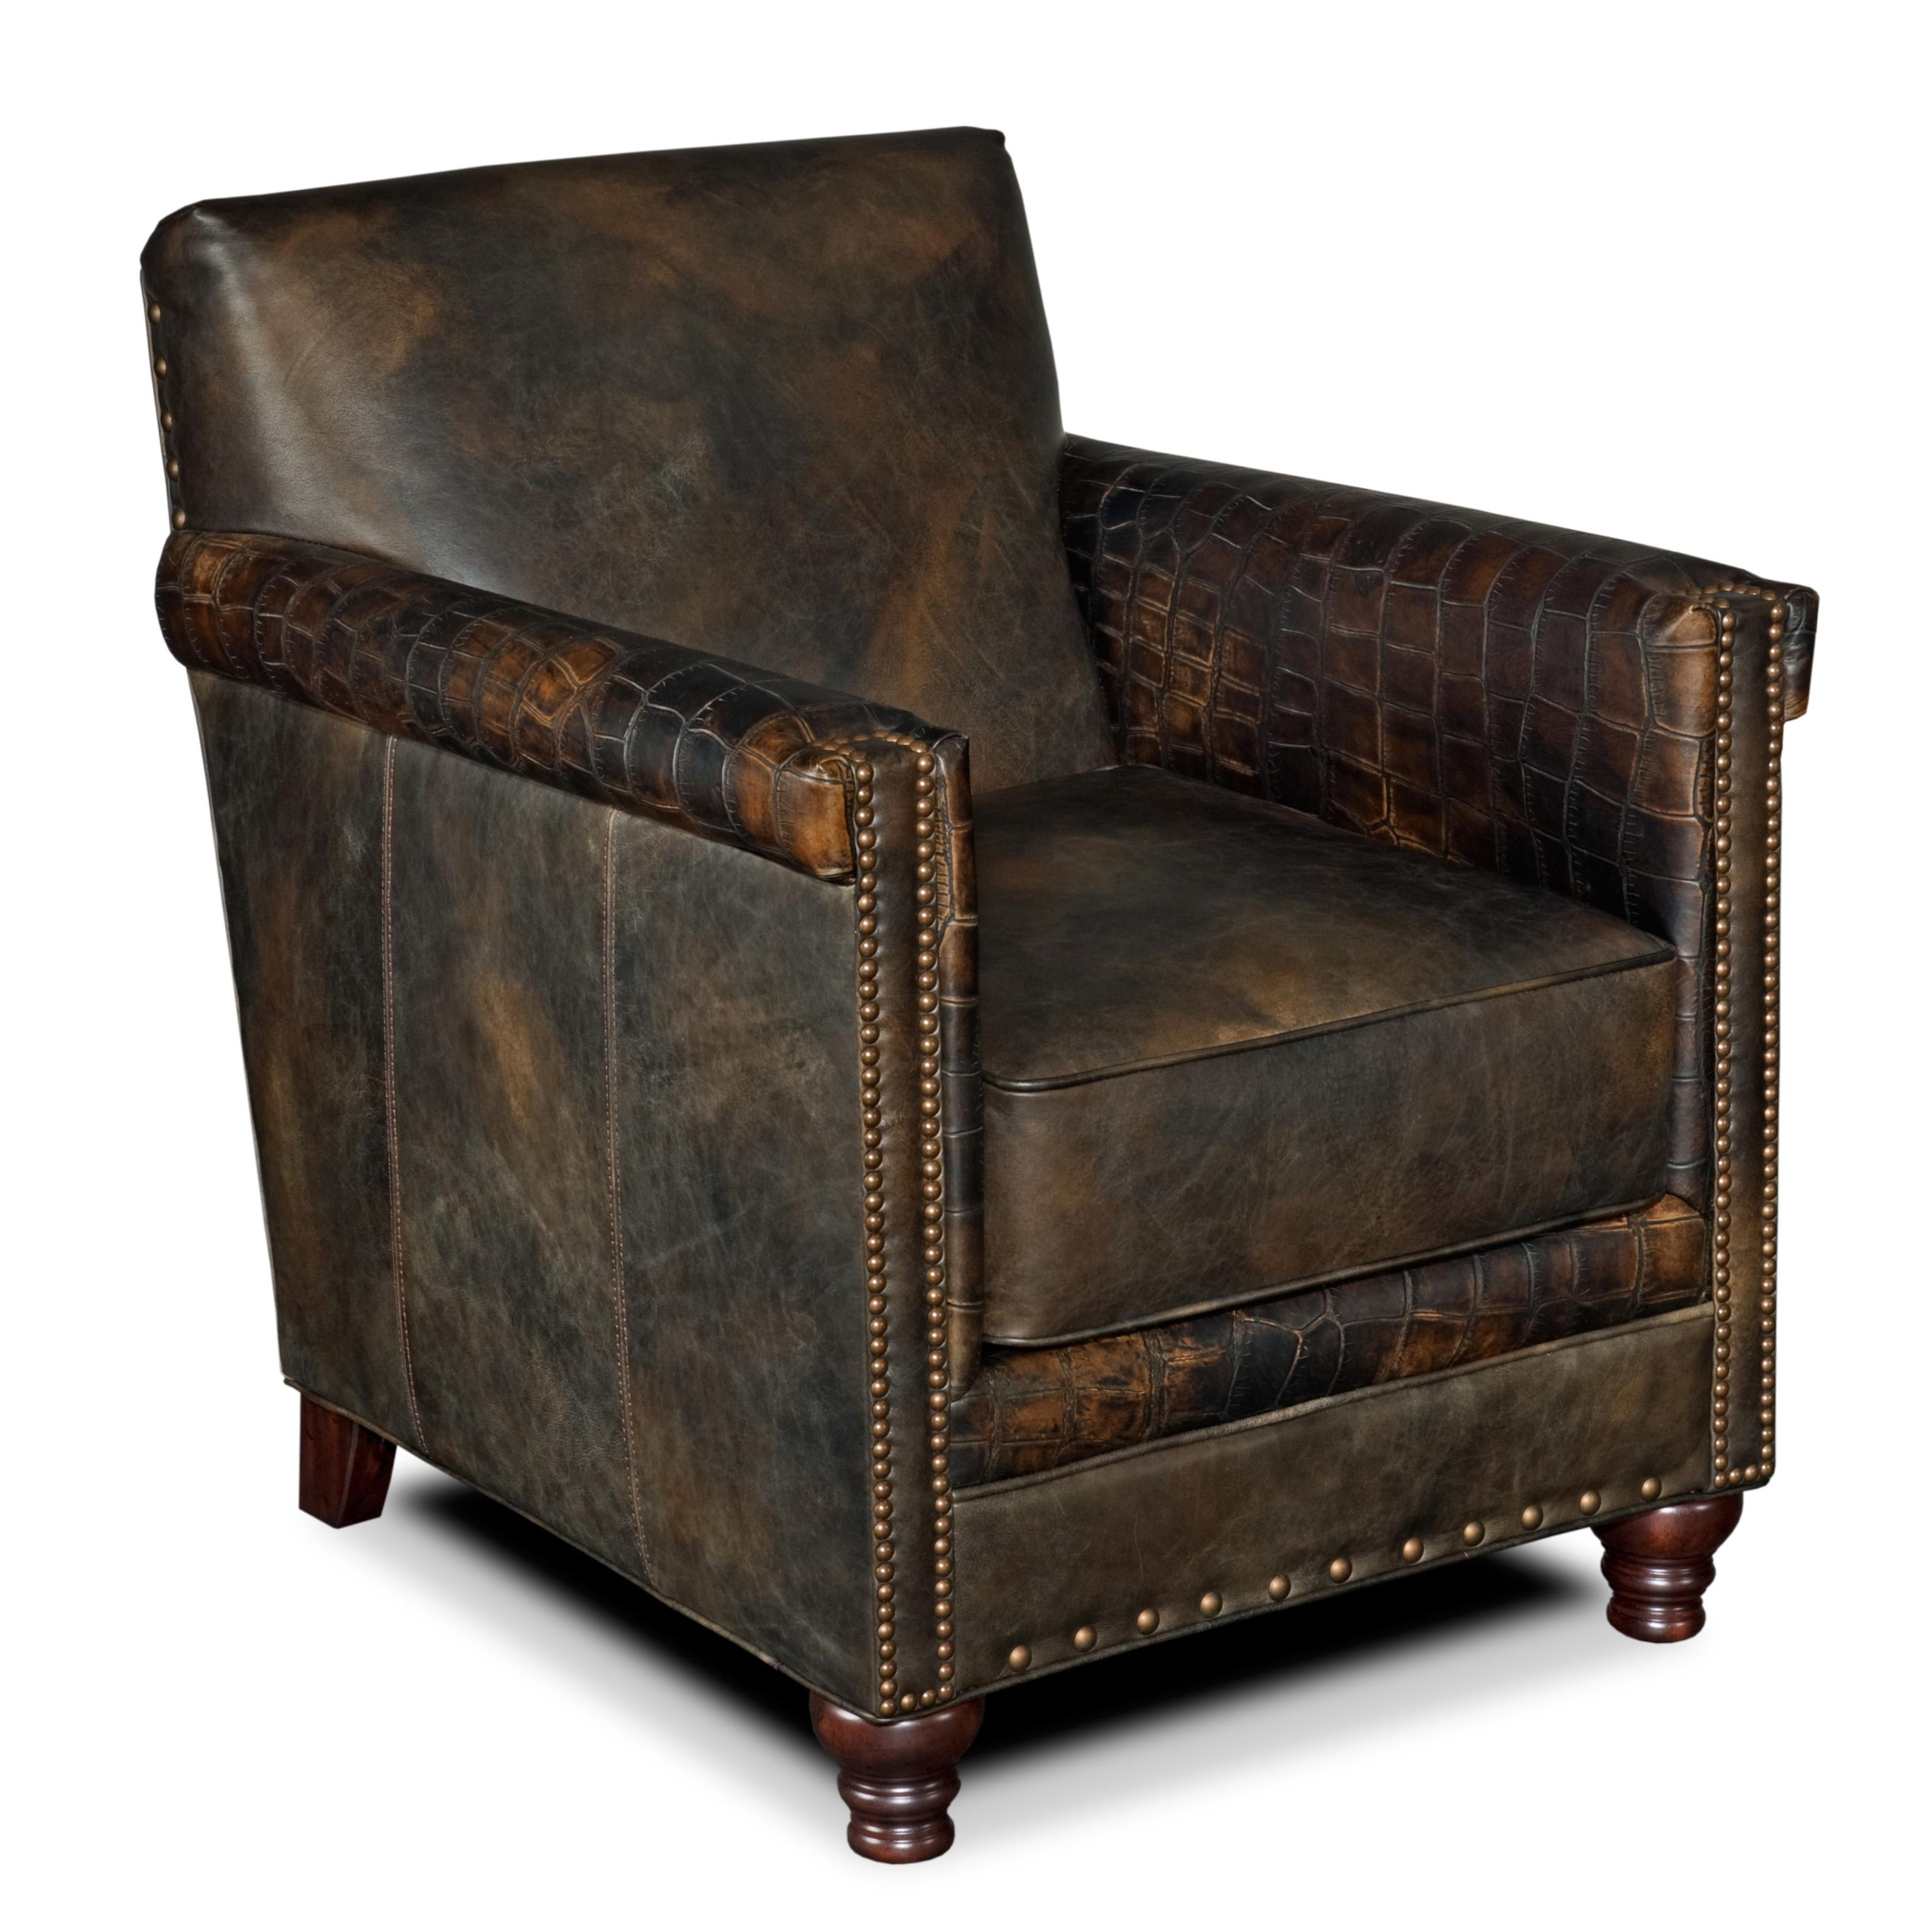 Ordinaire Hooker Furniture Seven Seas Club Chair In Old Saddle Fudge Leather